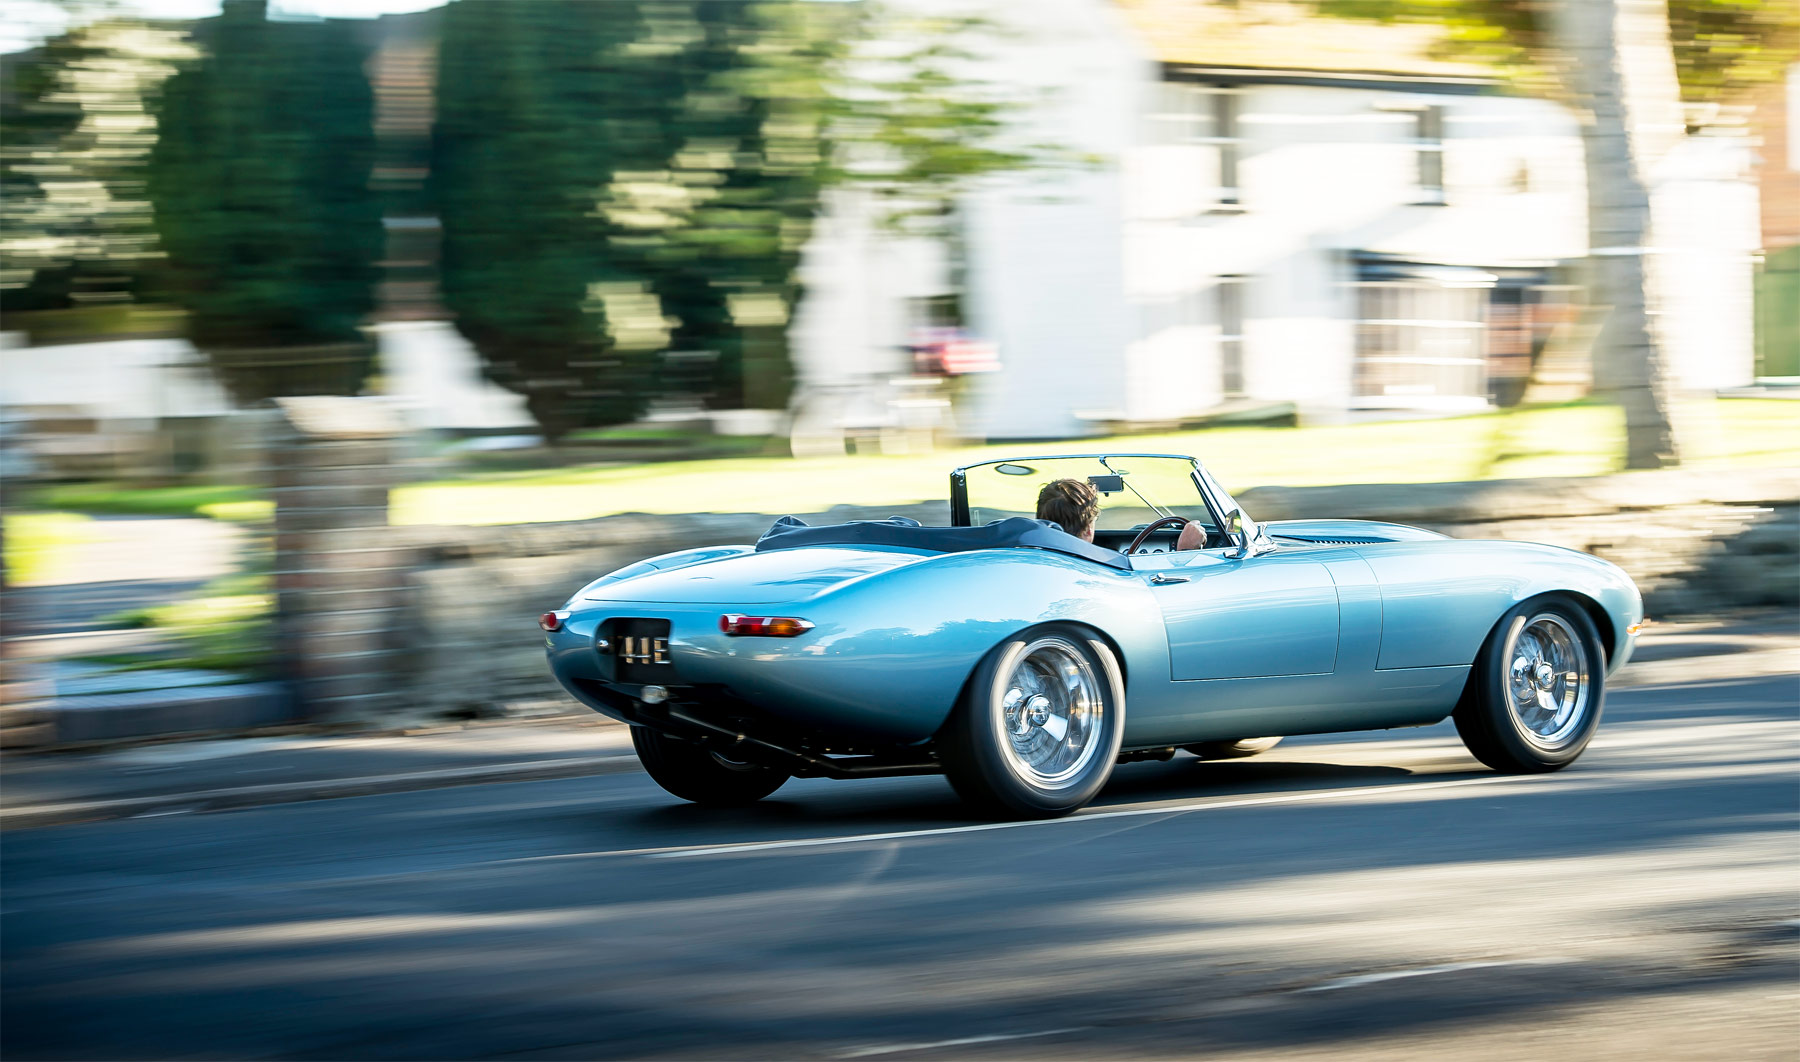 The £695,000 Hand Crafted Eagle Spyder GT Is Officially Launched